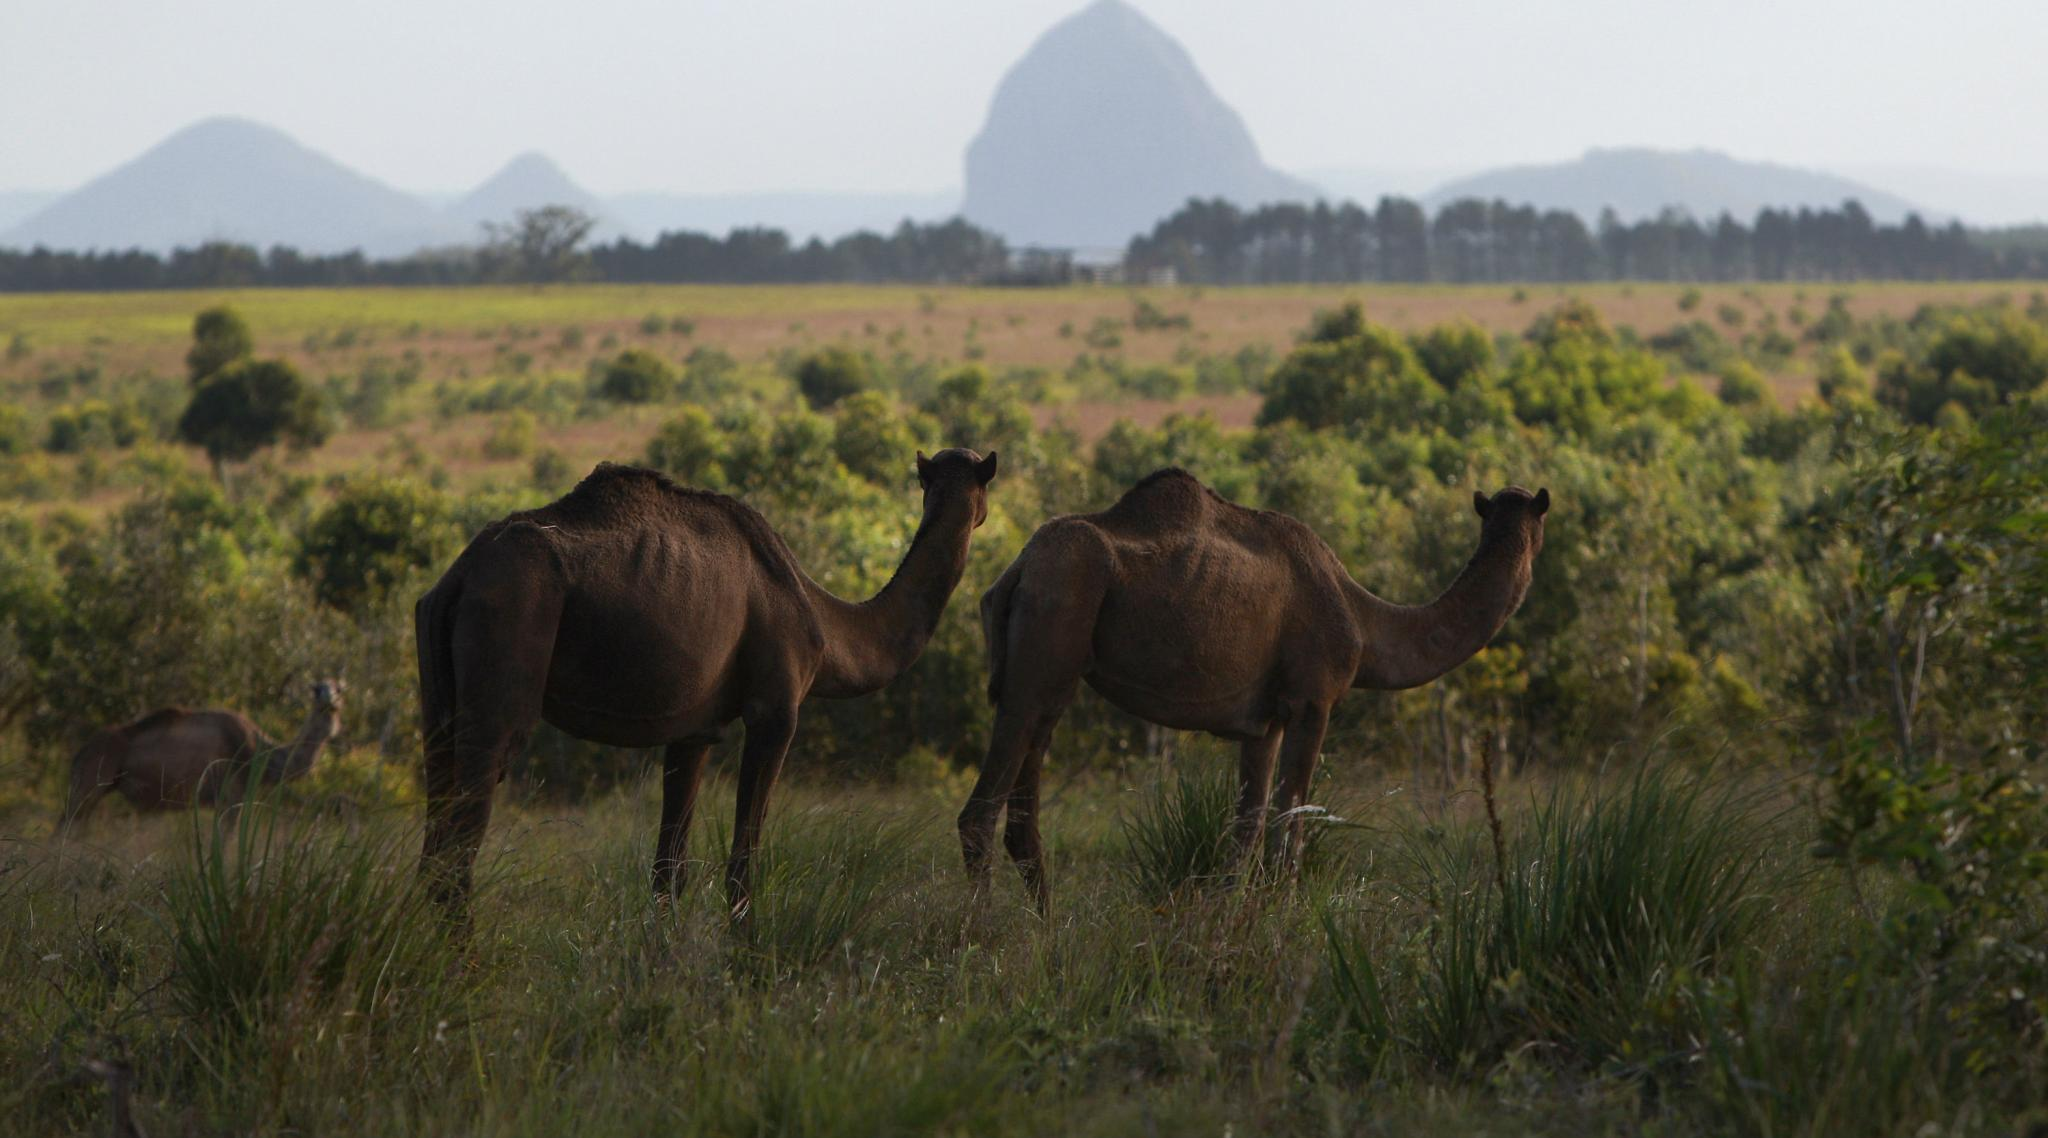 Australia Kills 5000 Camels Within 5 Days For Drinking Excess Water in Drought-Affected Regions